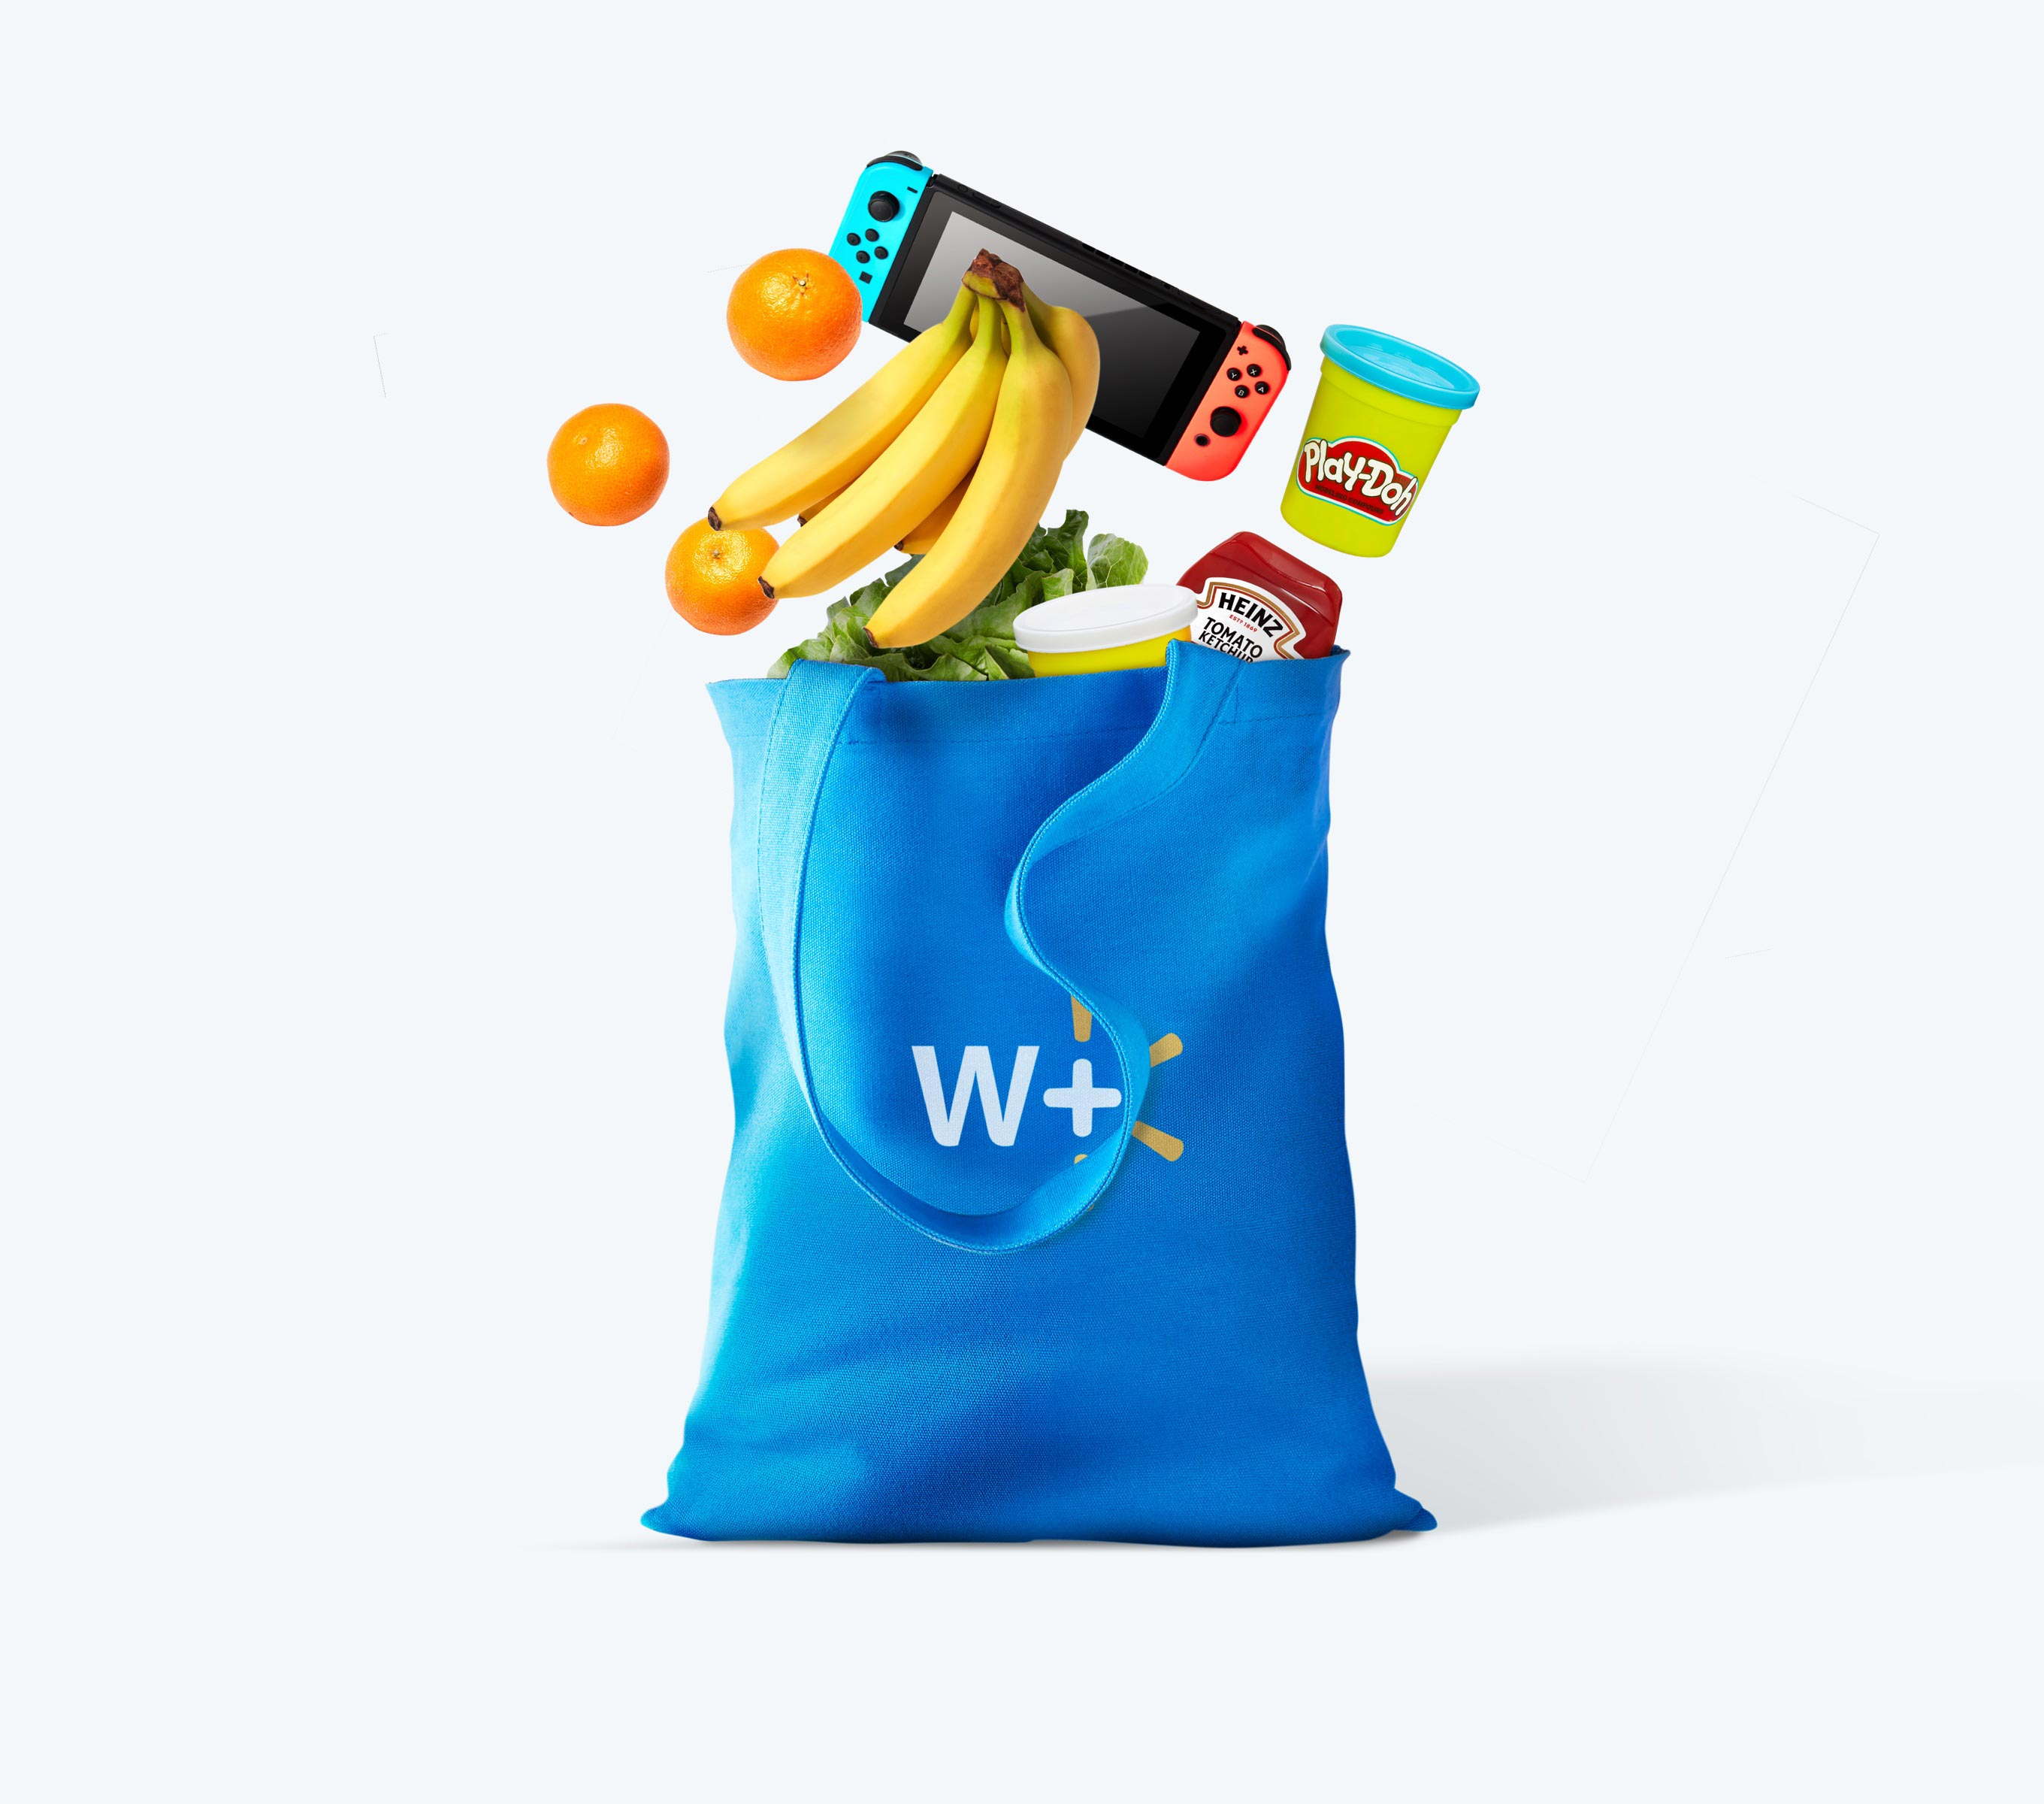 Walmart tote bag filled with products